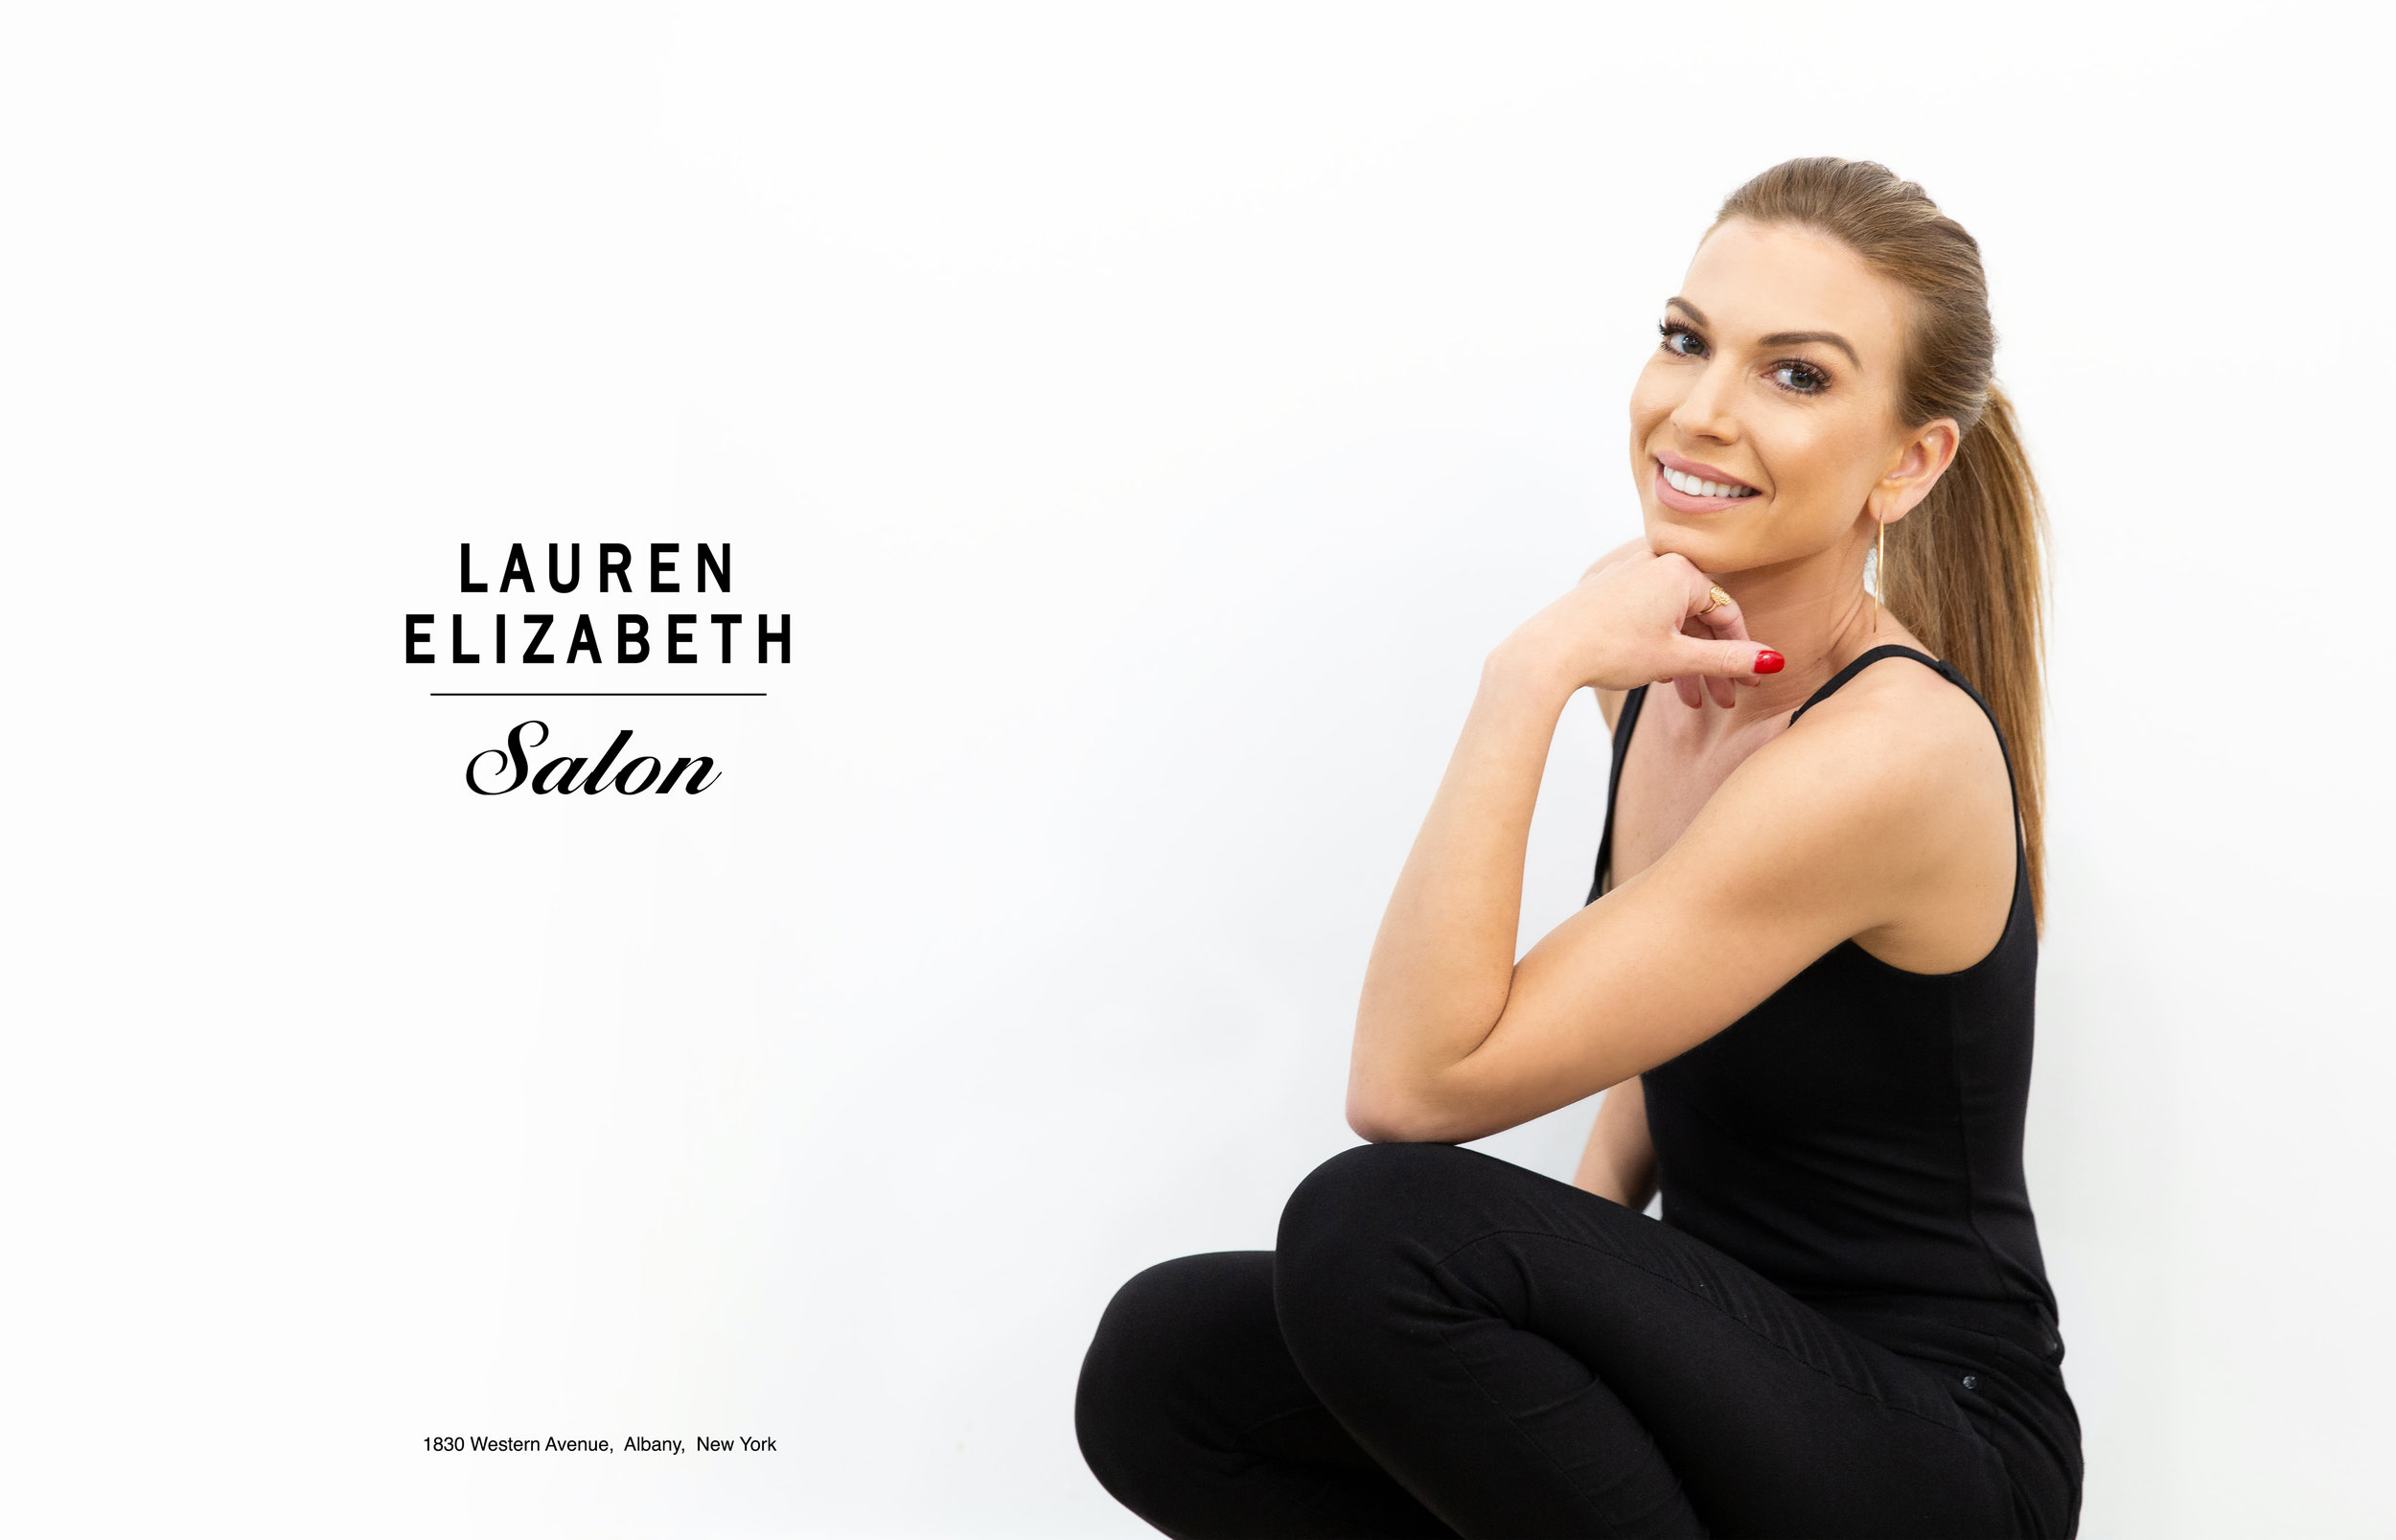 35 - Sponsored Ad (Lauren Elizabeth Salon).jpg